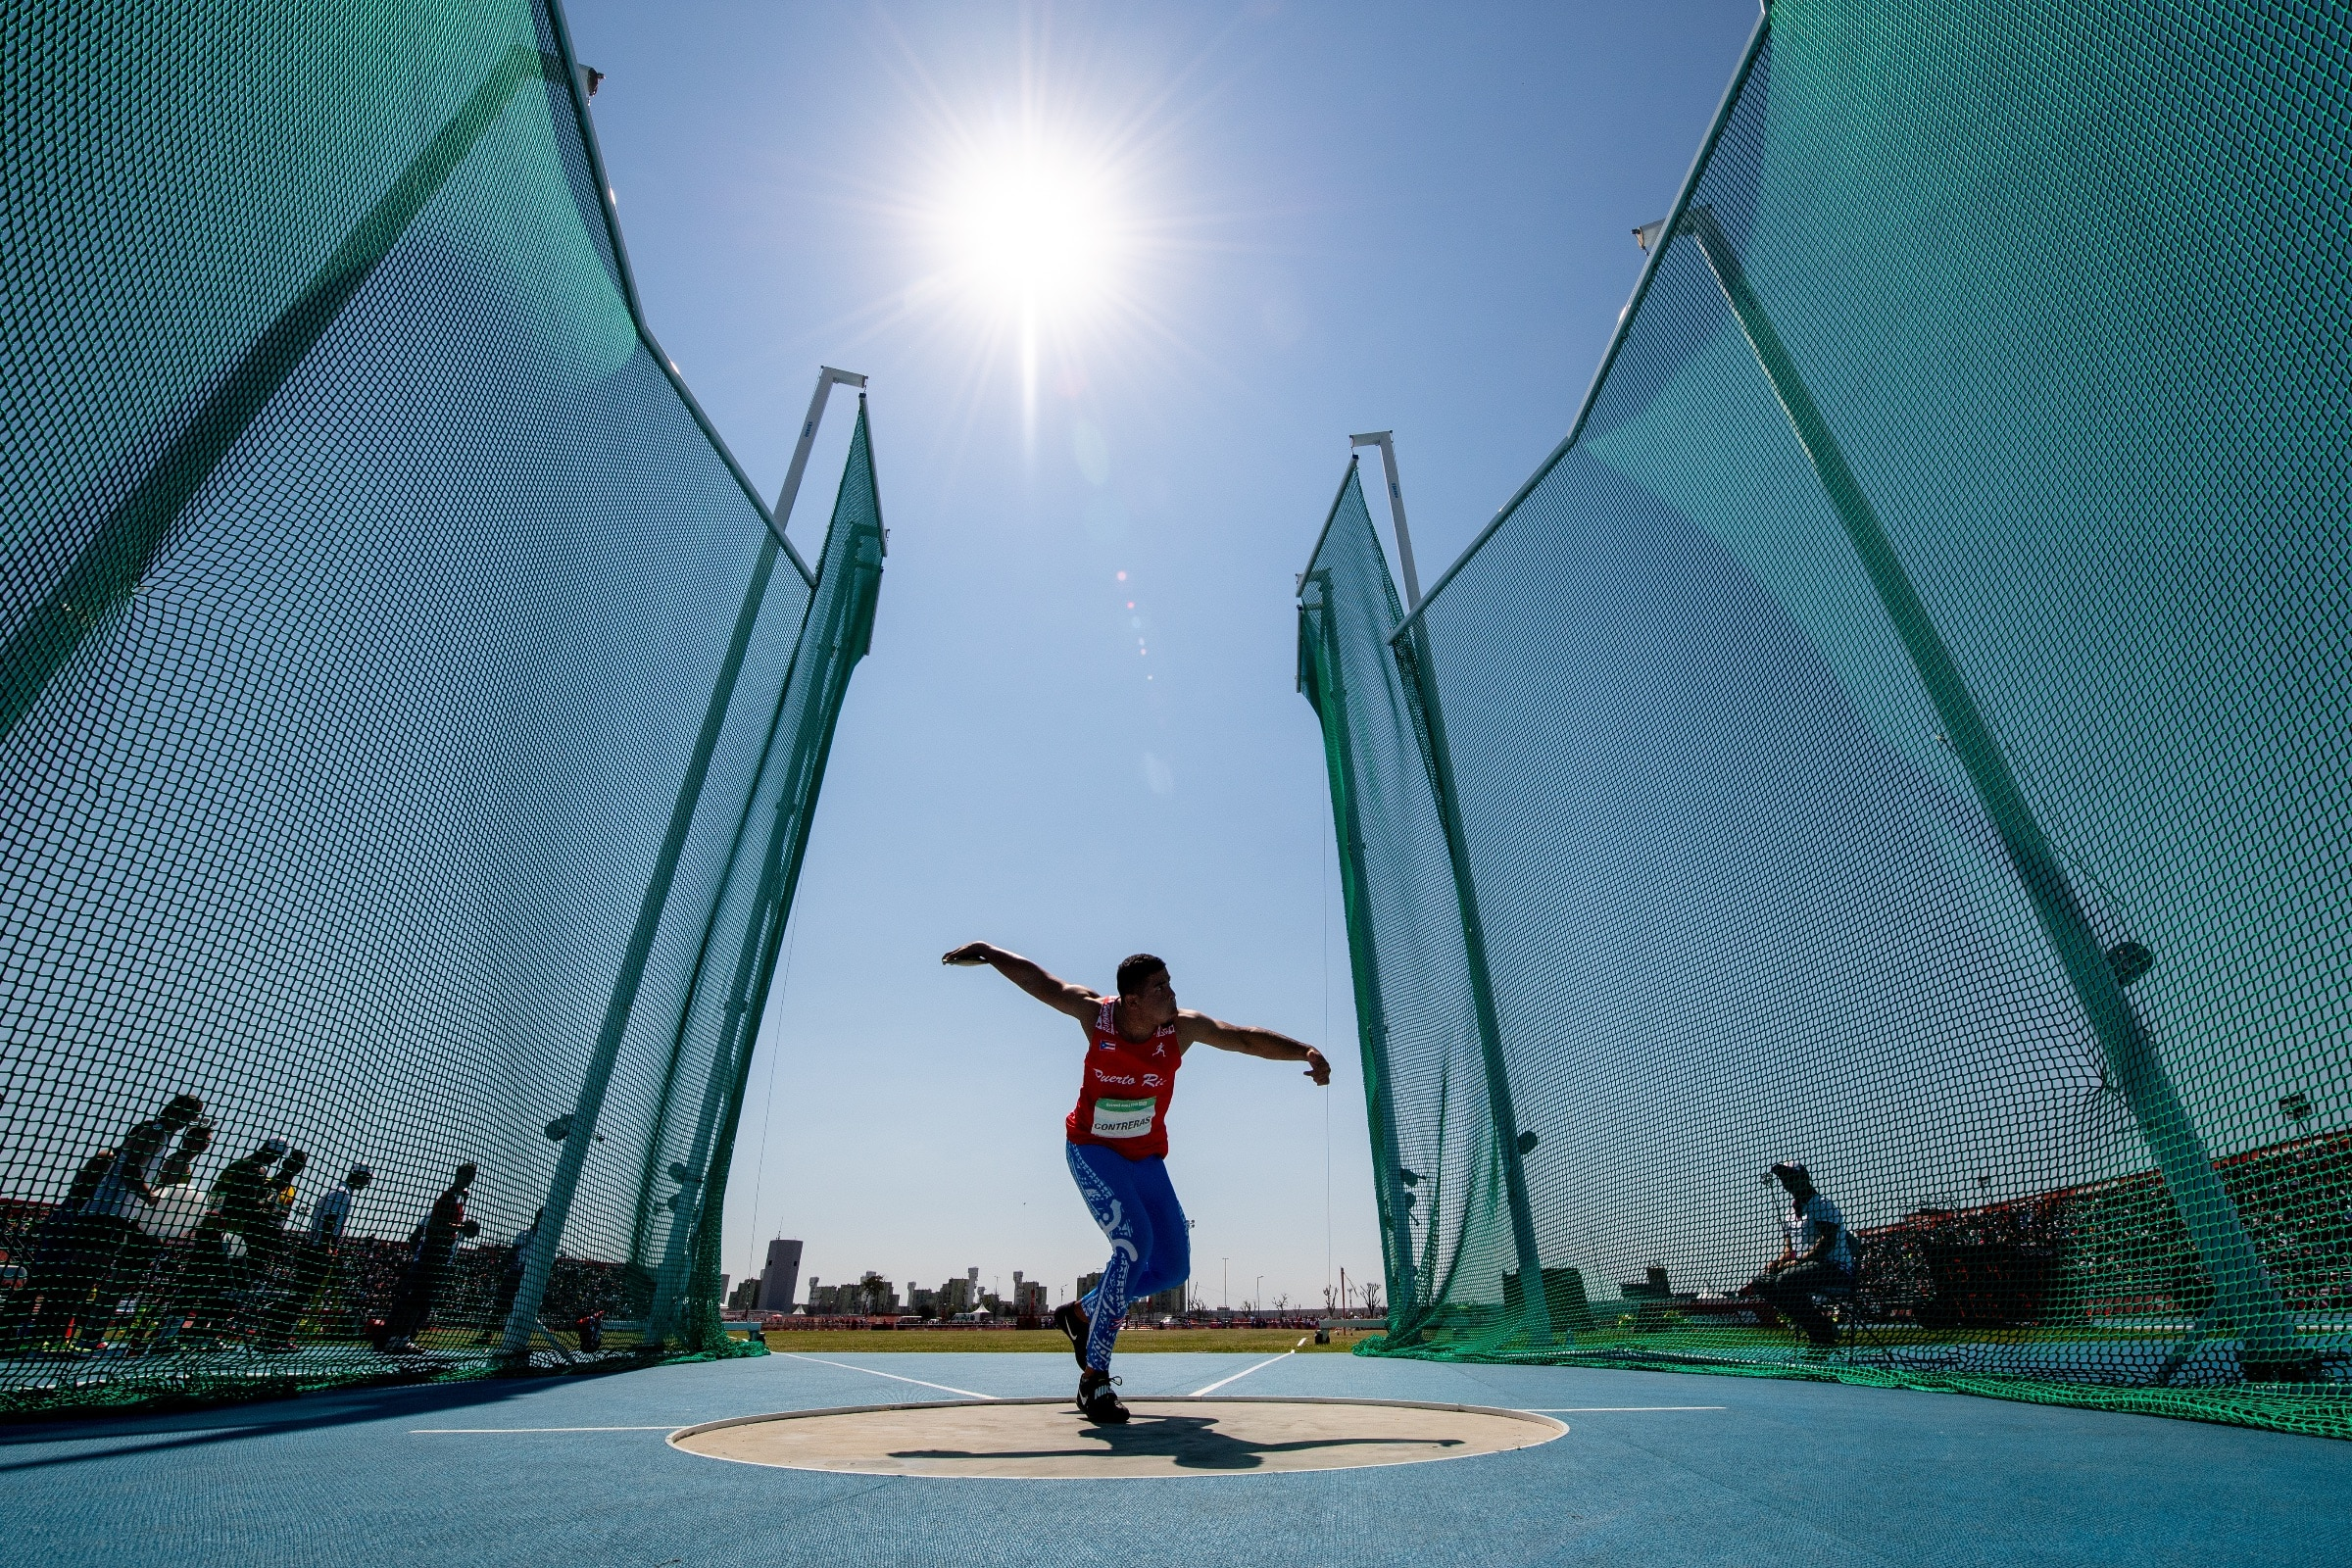 Buenos Aires 2018 - Athletics - Men's Discus Throw